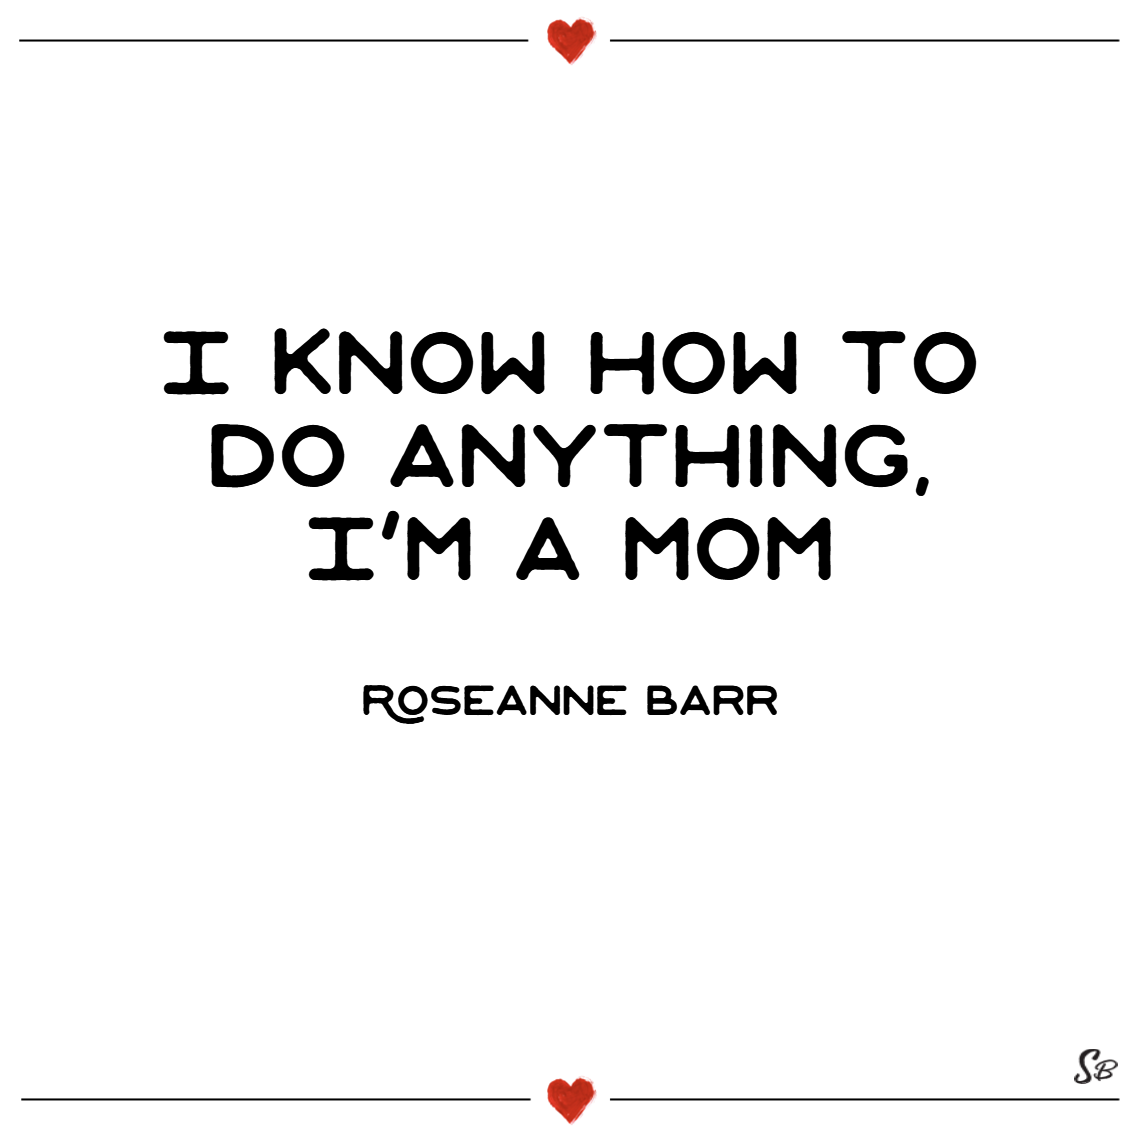 I know how to do anything, i'm a mom. – roseanne barr single mom quotes